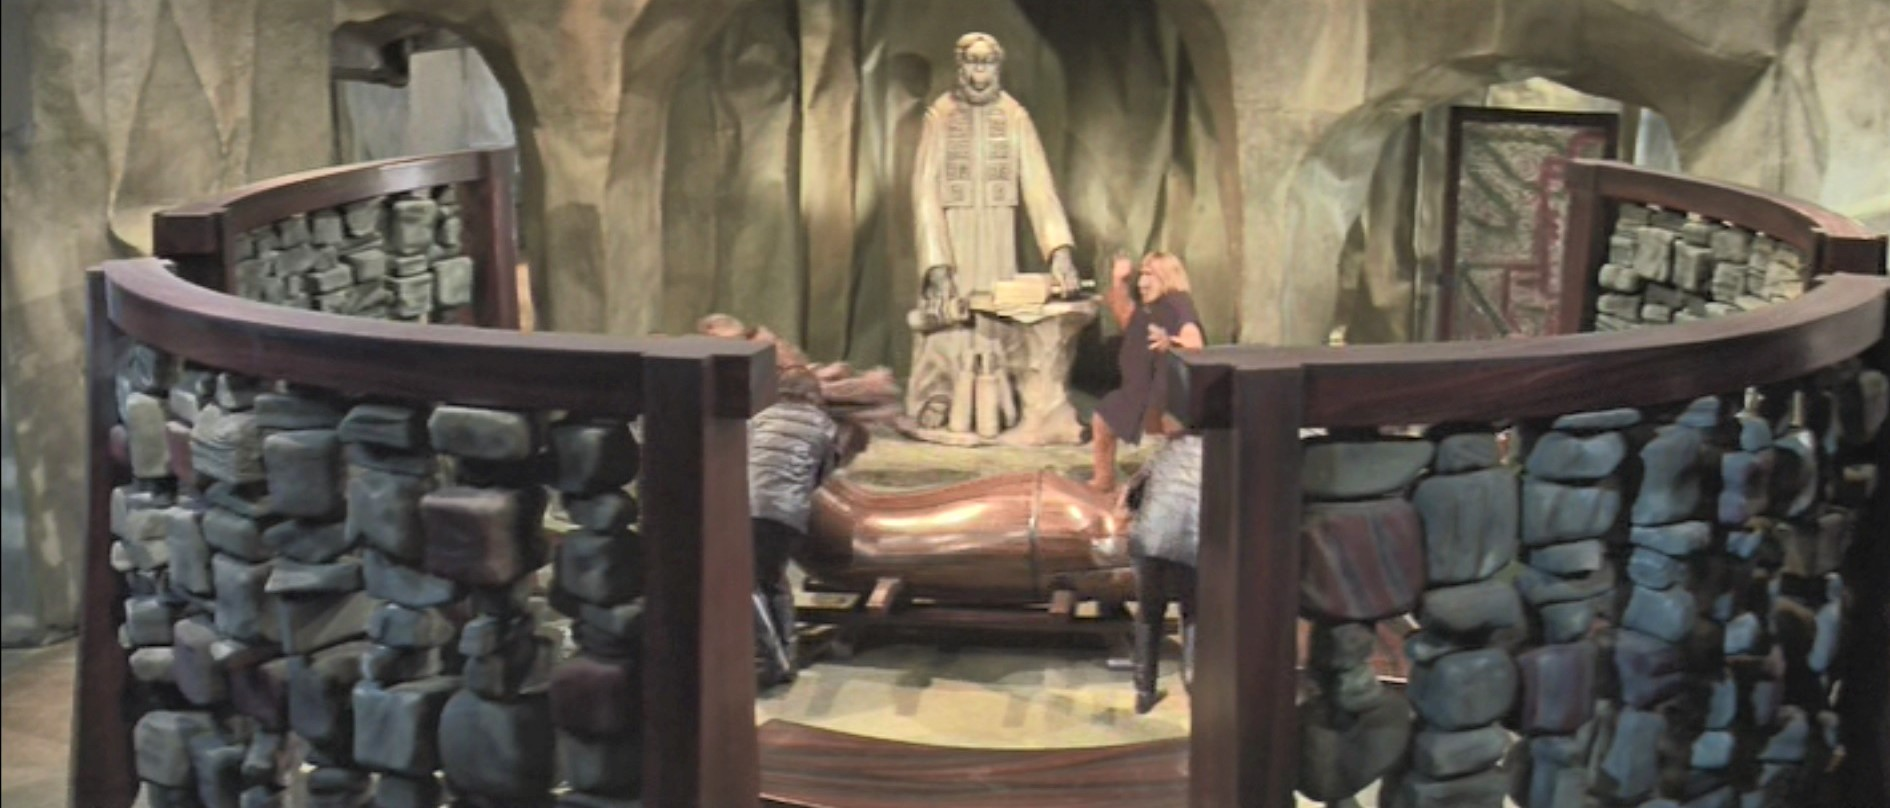 Planet of the Apes Set Church and Circular Room Divider